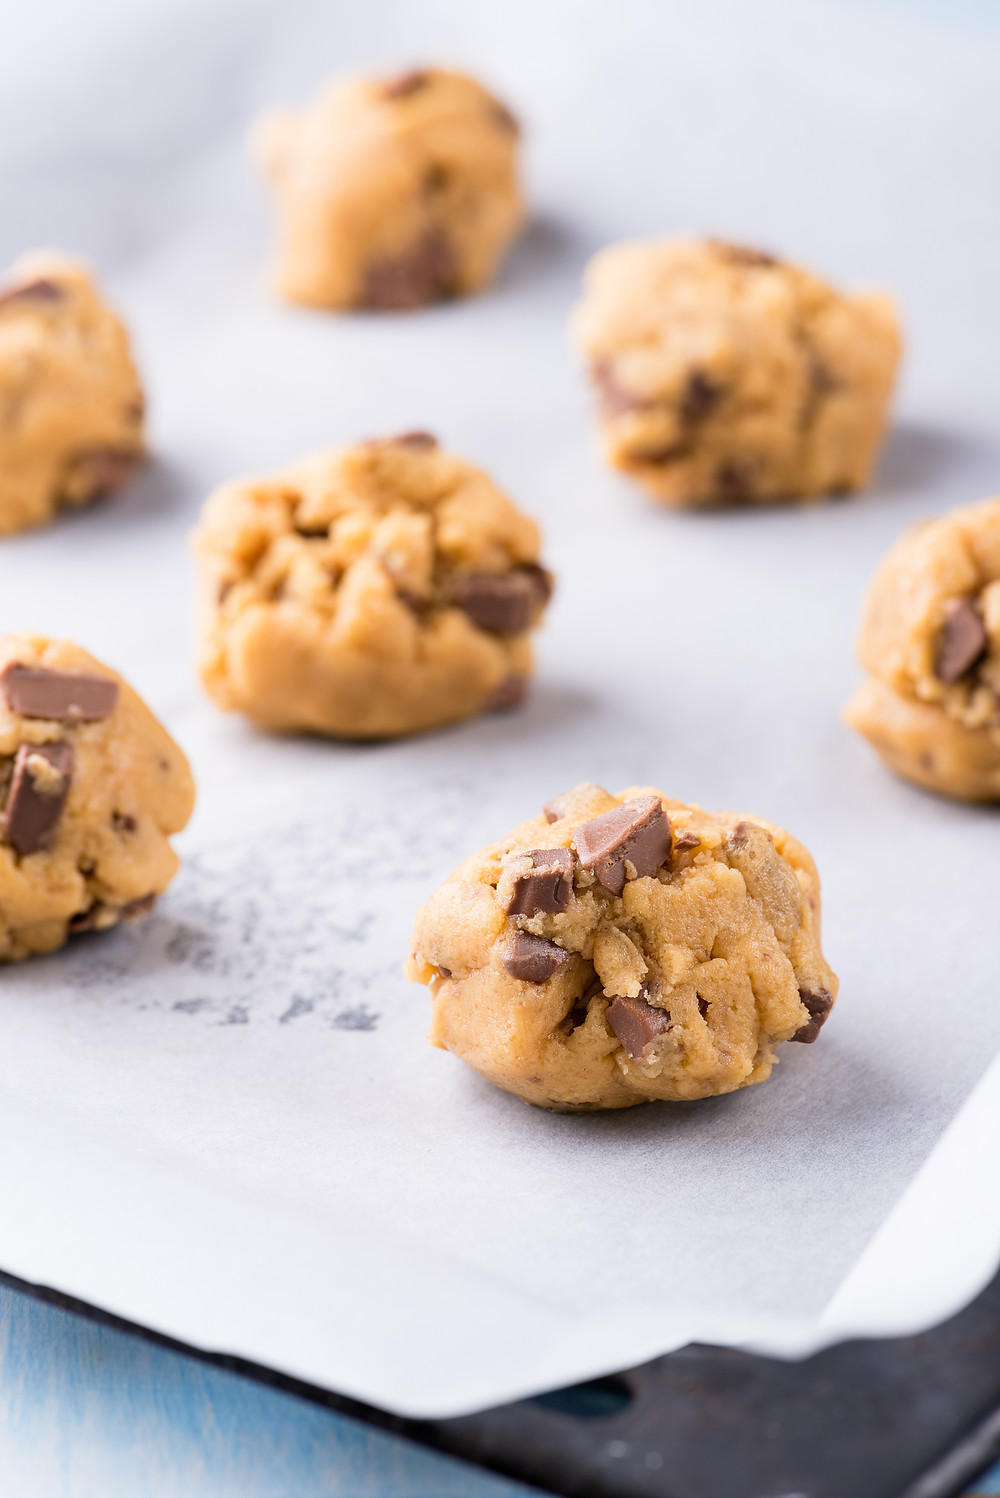 Doughlicious Raw Cookie Treats by Stacey Antine MS, RDN, Bergen County Moms